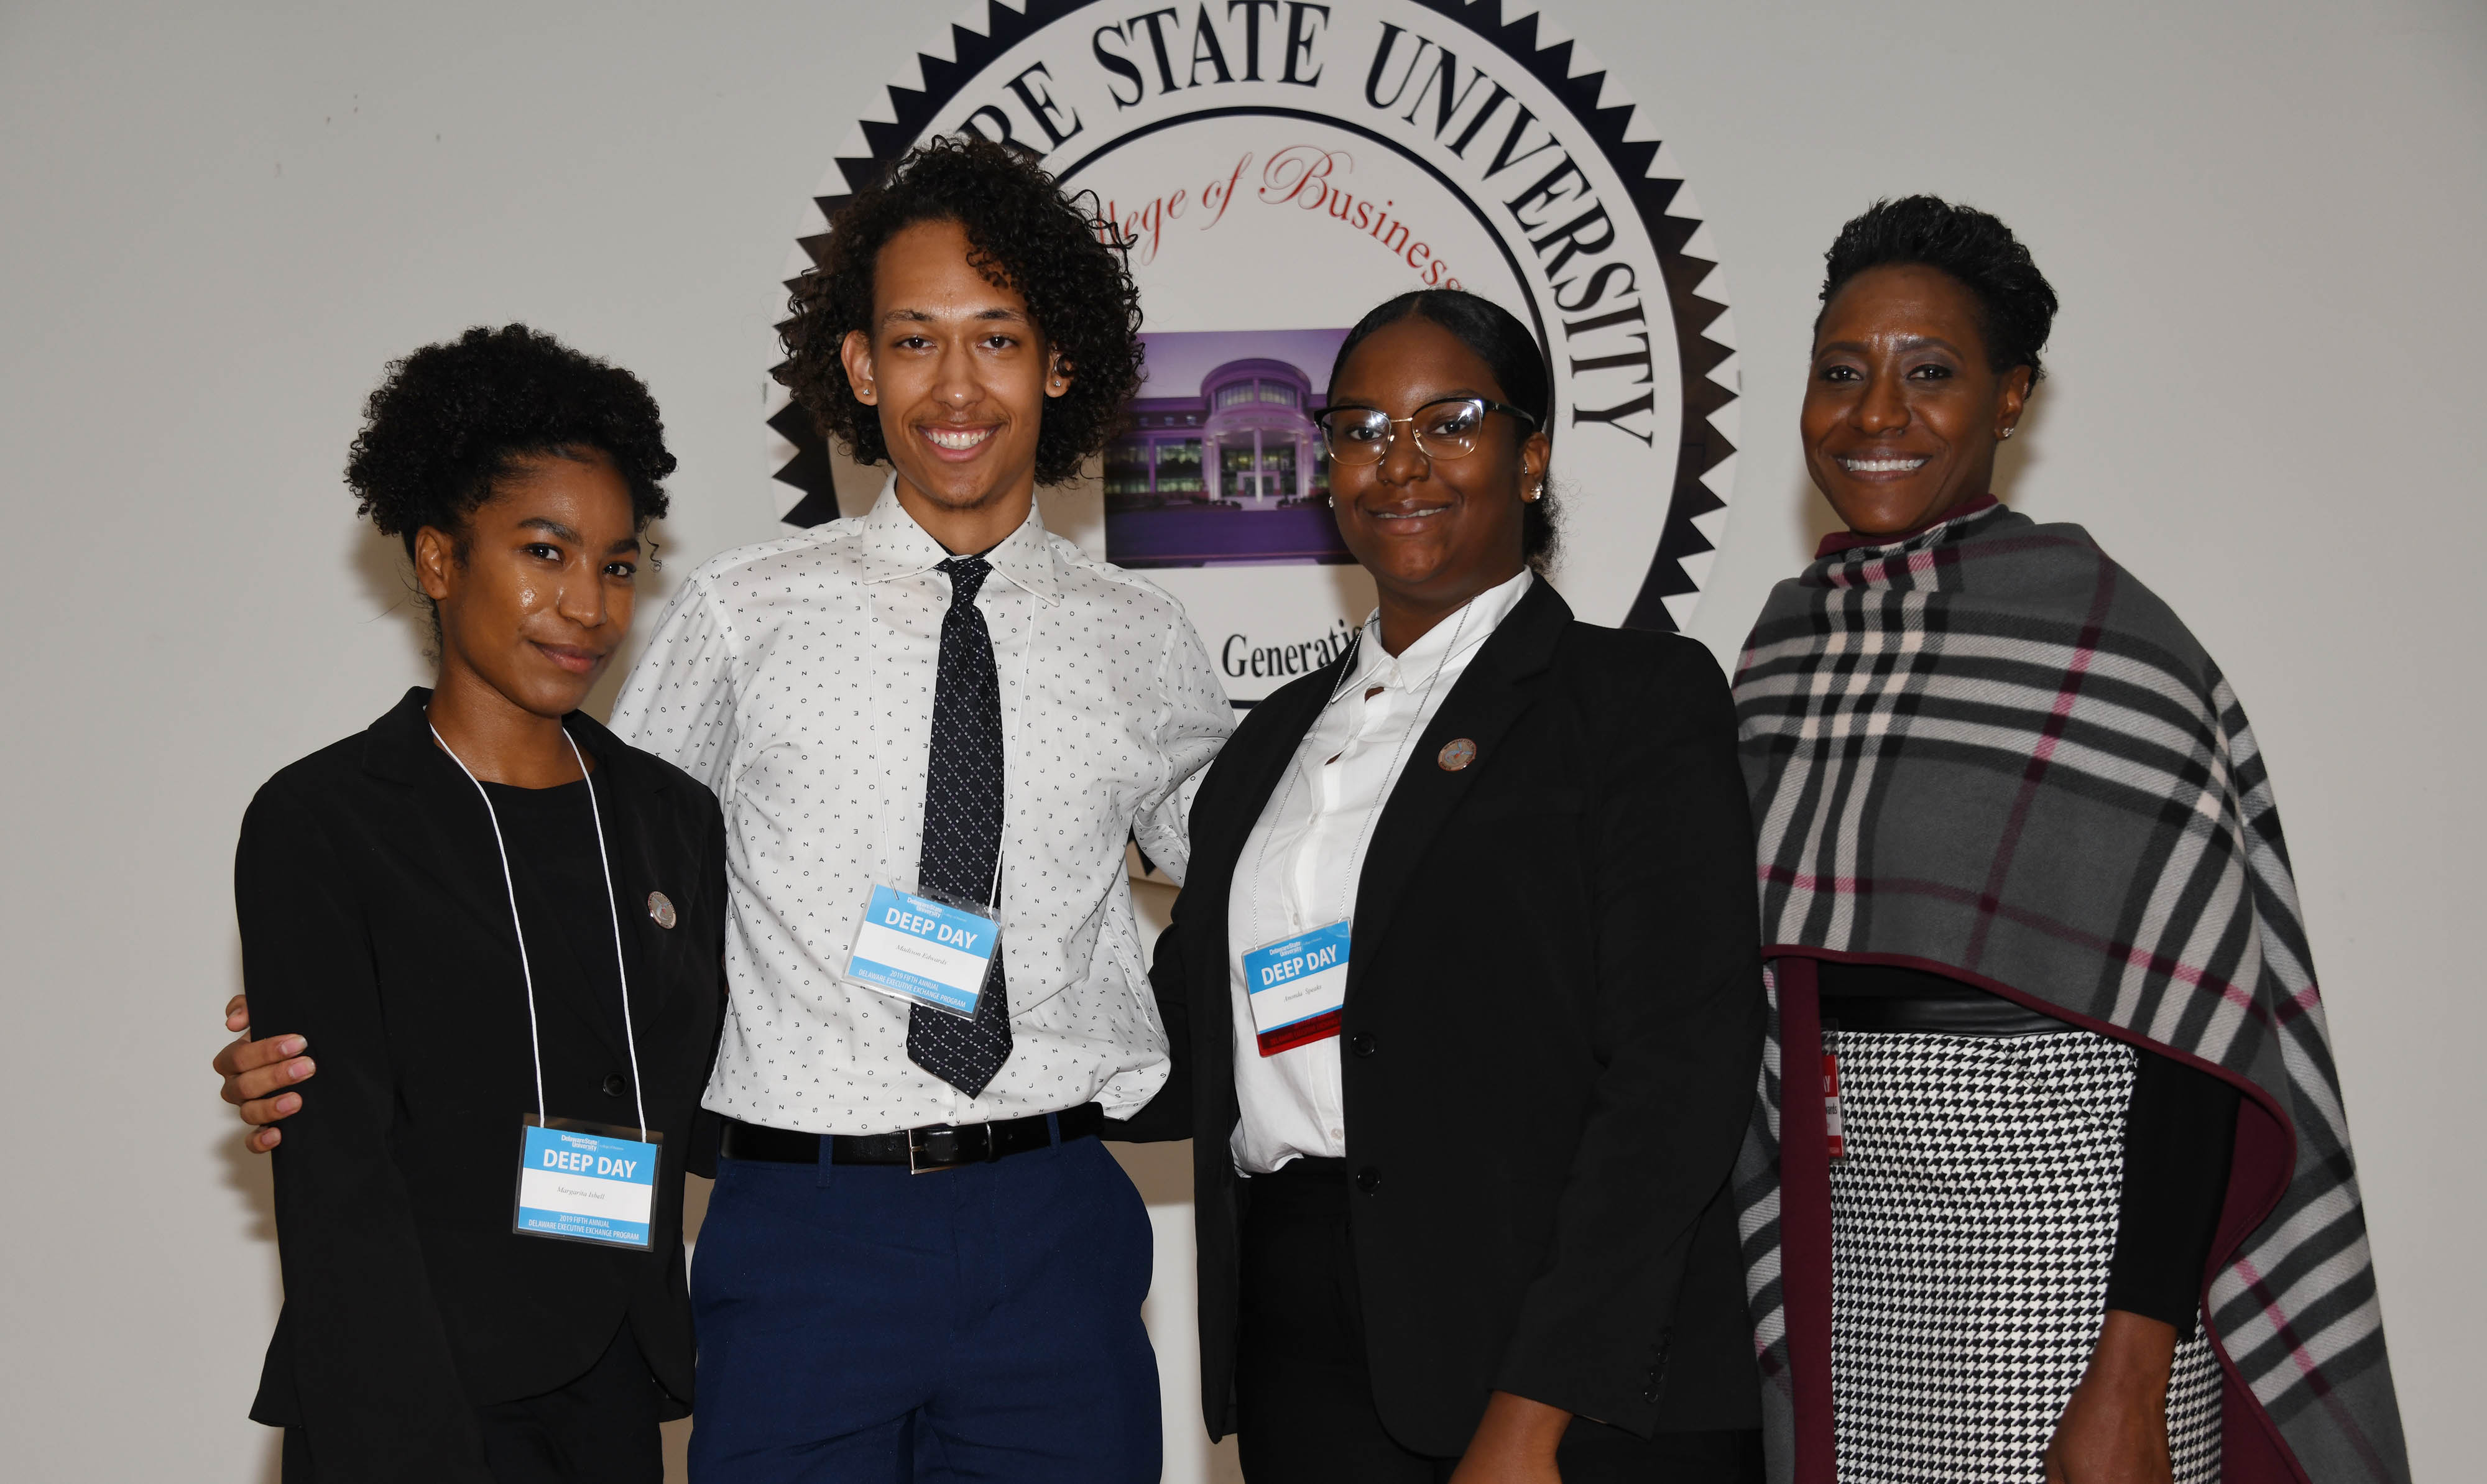 The Edwards Team won first place in the 2019 DEEP Day Business Case Competition. (L-r) Margarita Isbell, Madison Edwards, Anonda Speaks, and their coach Dr. Francine Edwards, dean of the College of Humanities, Education and Social Science.